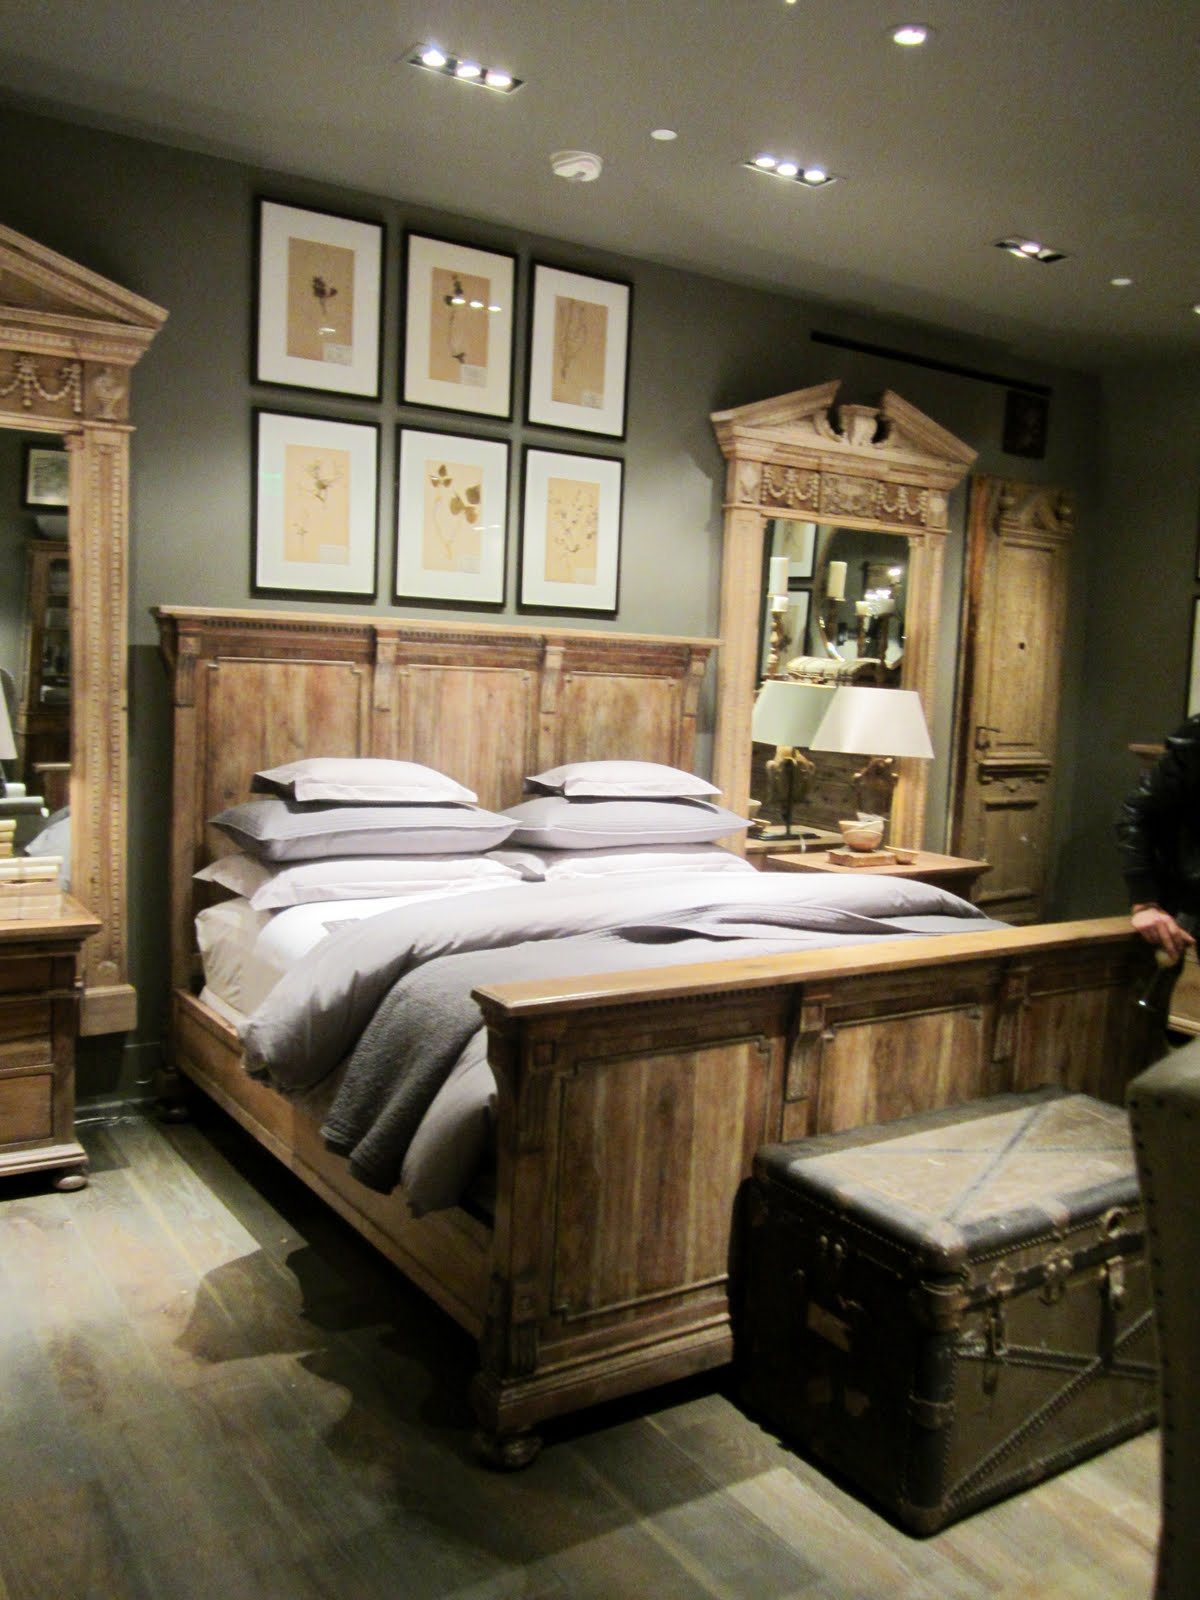 Restoration Hardware Bedroom Amusing Restoring A Great Brand The Incredible New Look Of Restoration Review